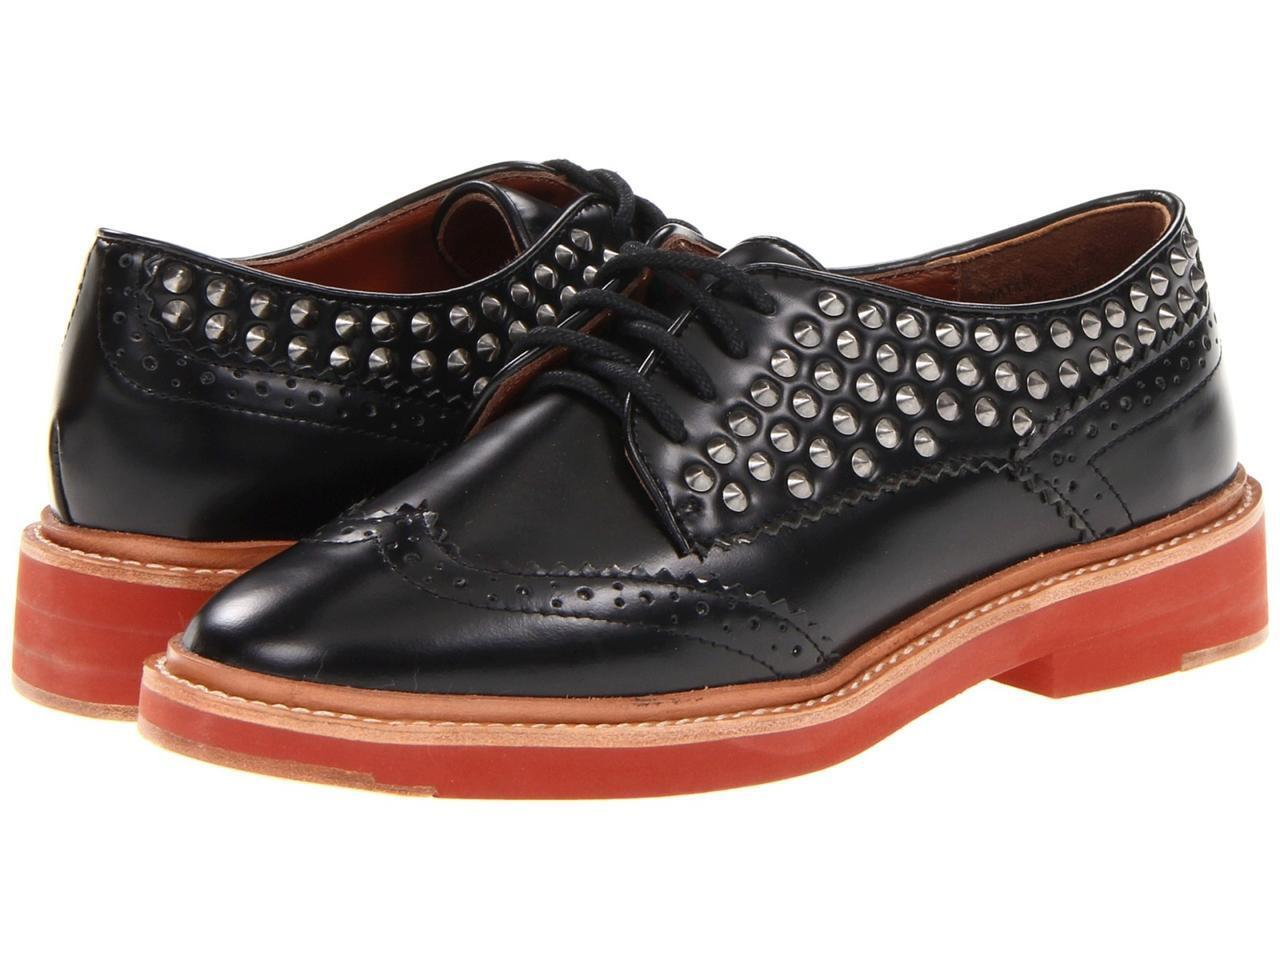 Pour La Victoire Wouomo Mayah Flat nero Calf leather lace-up studs wingtip NEW